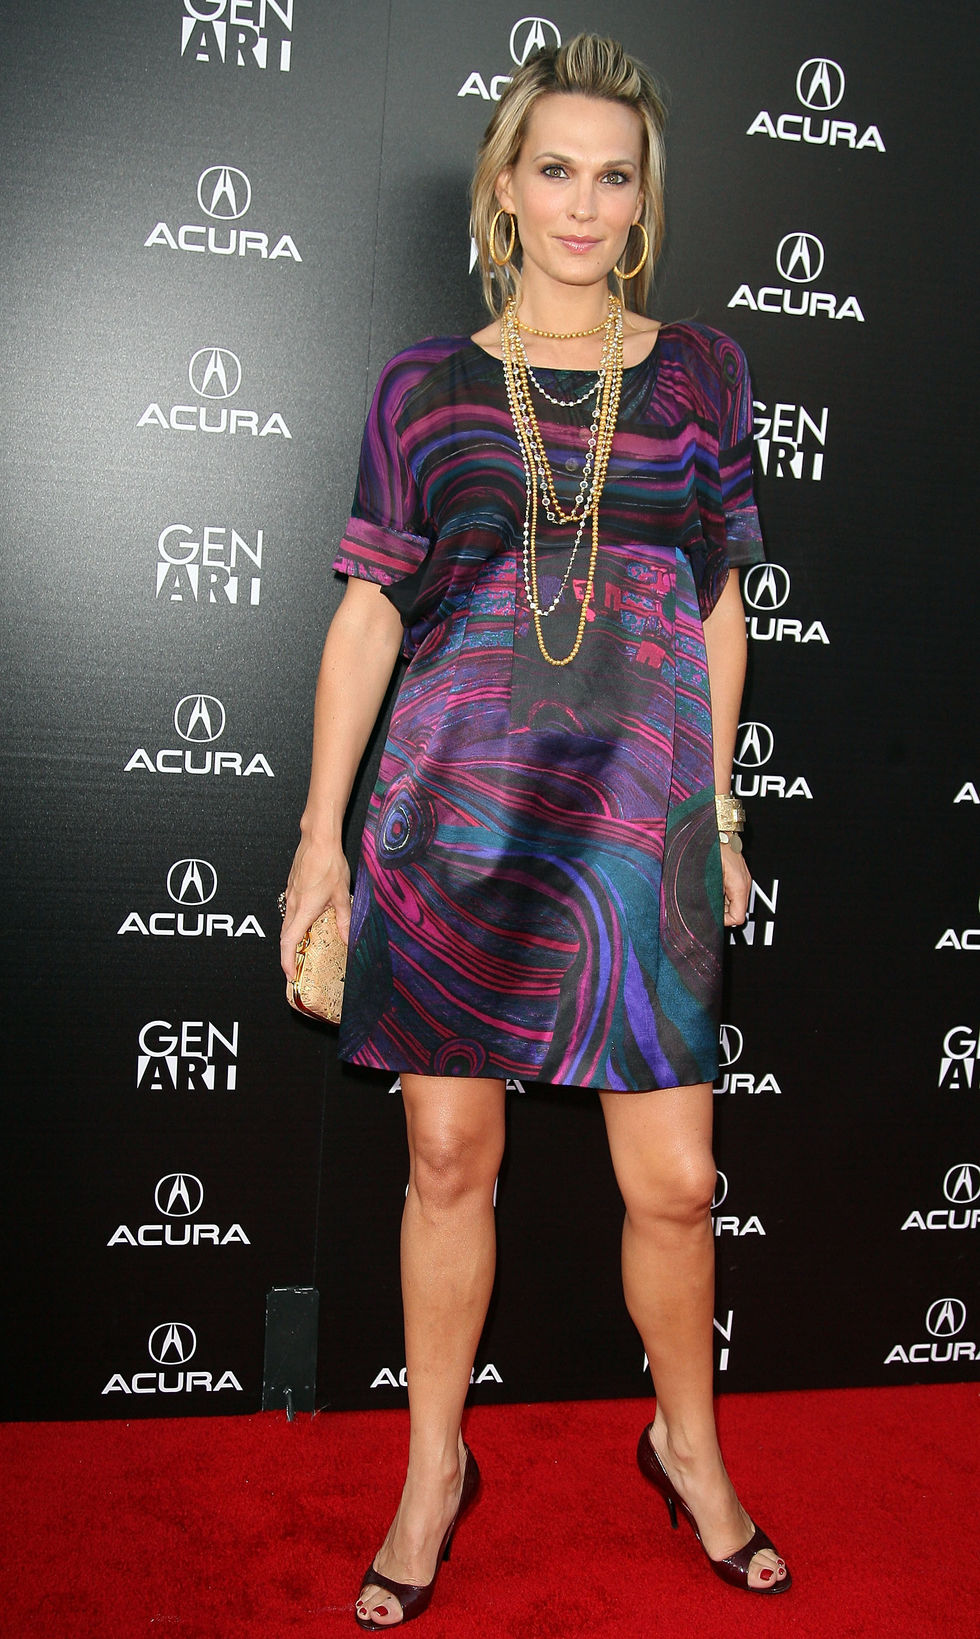 molly-sims-capture-the-night-photography-exhibition-in-los-angeles-06